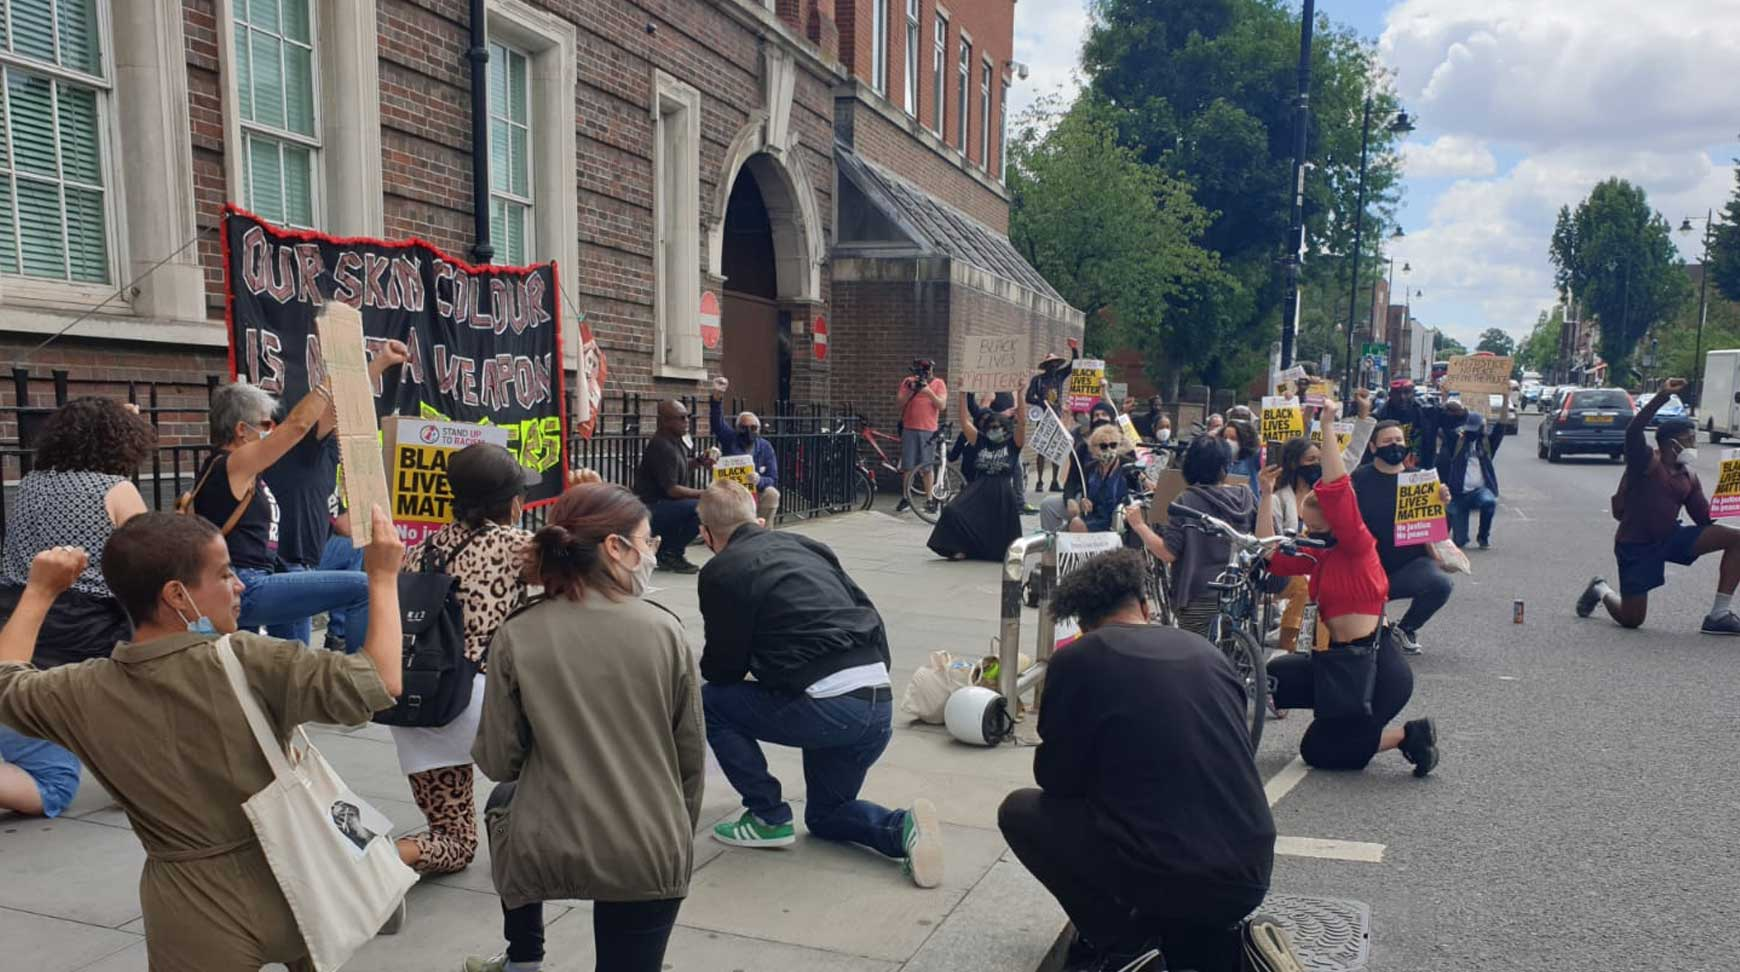 Photos: Tottenham BLM says end Section 60 stop and search and ban tasers now!